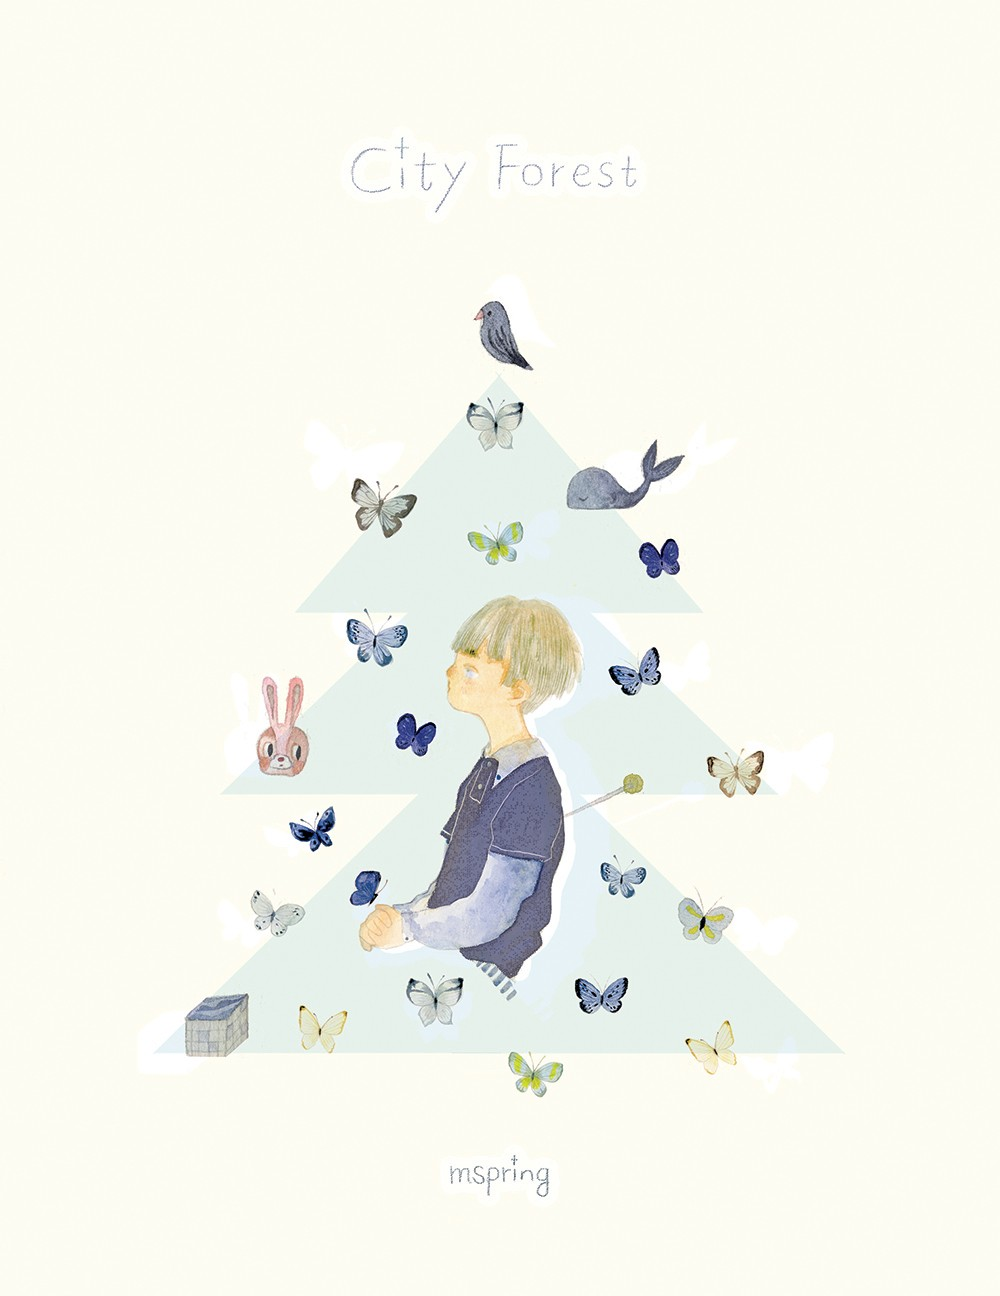 City Forest